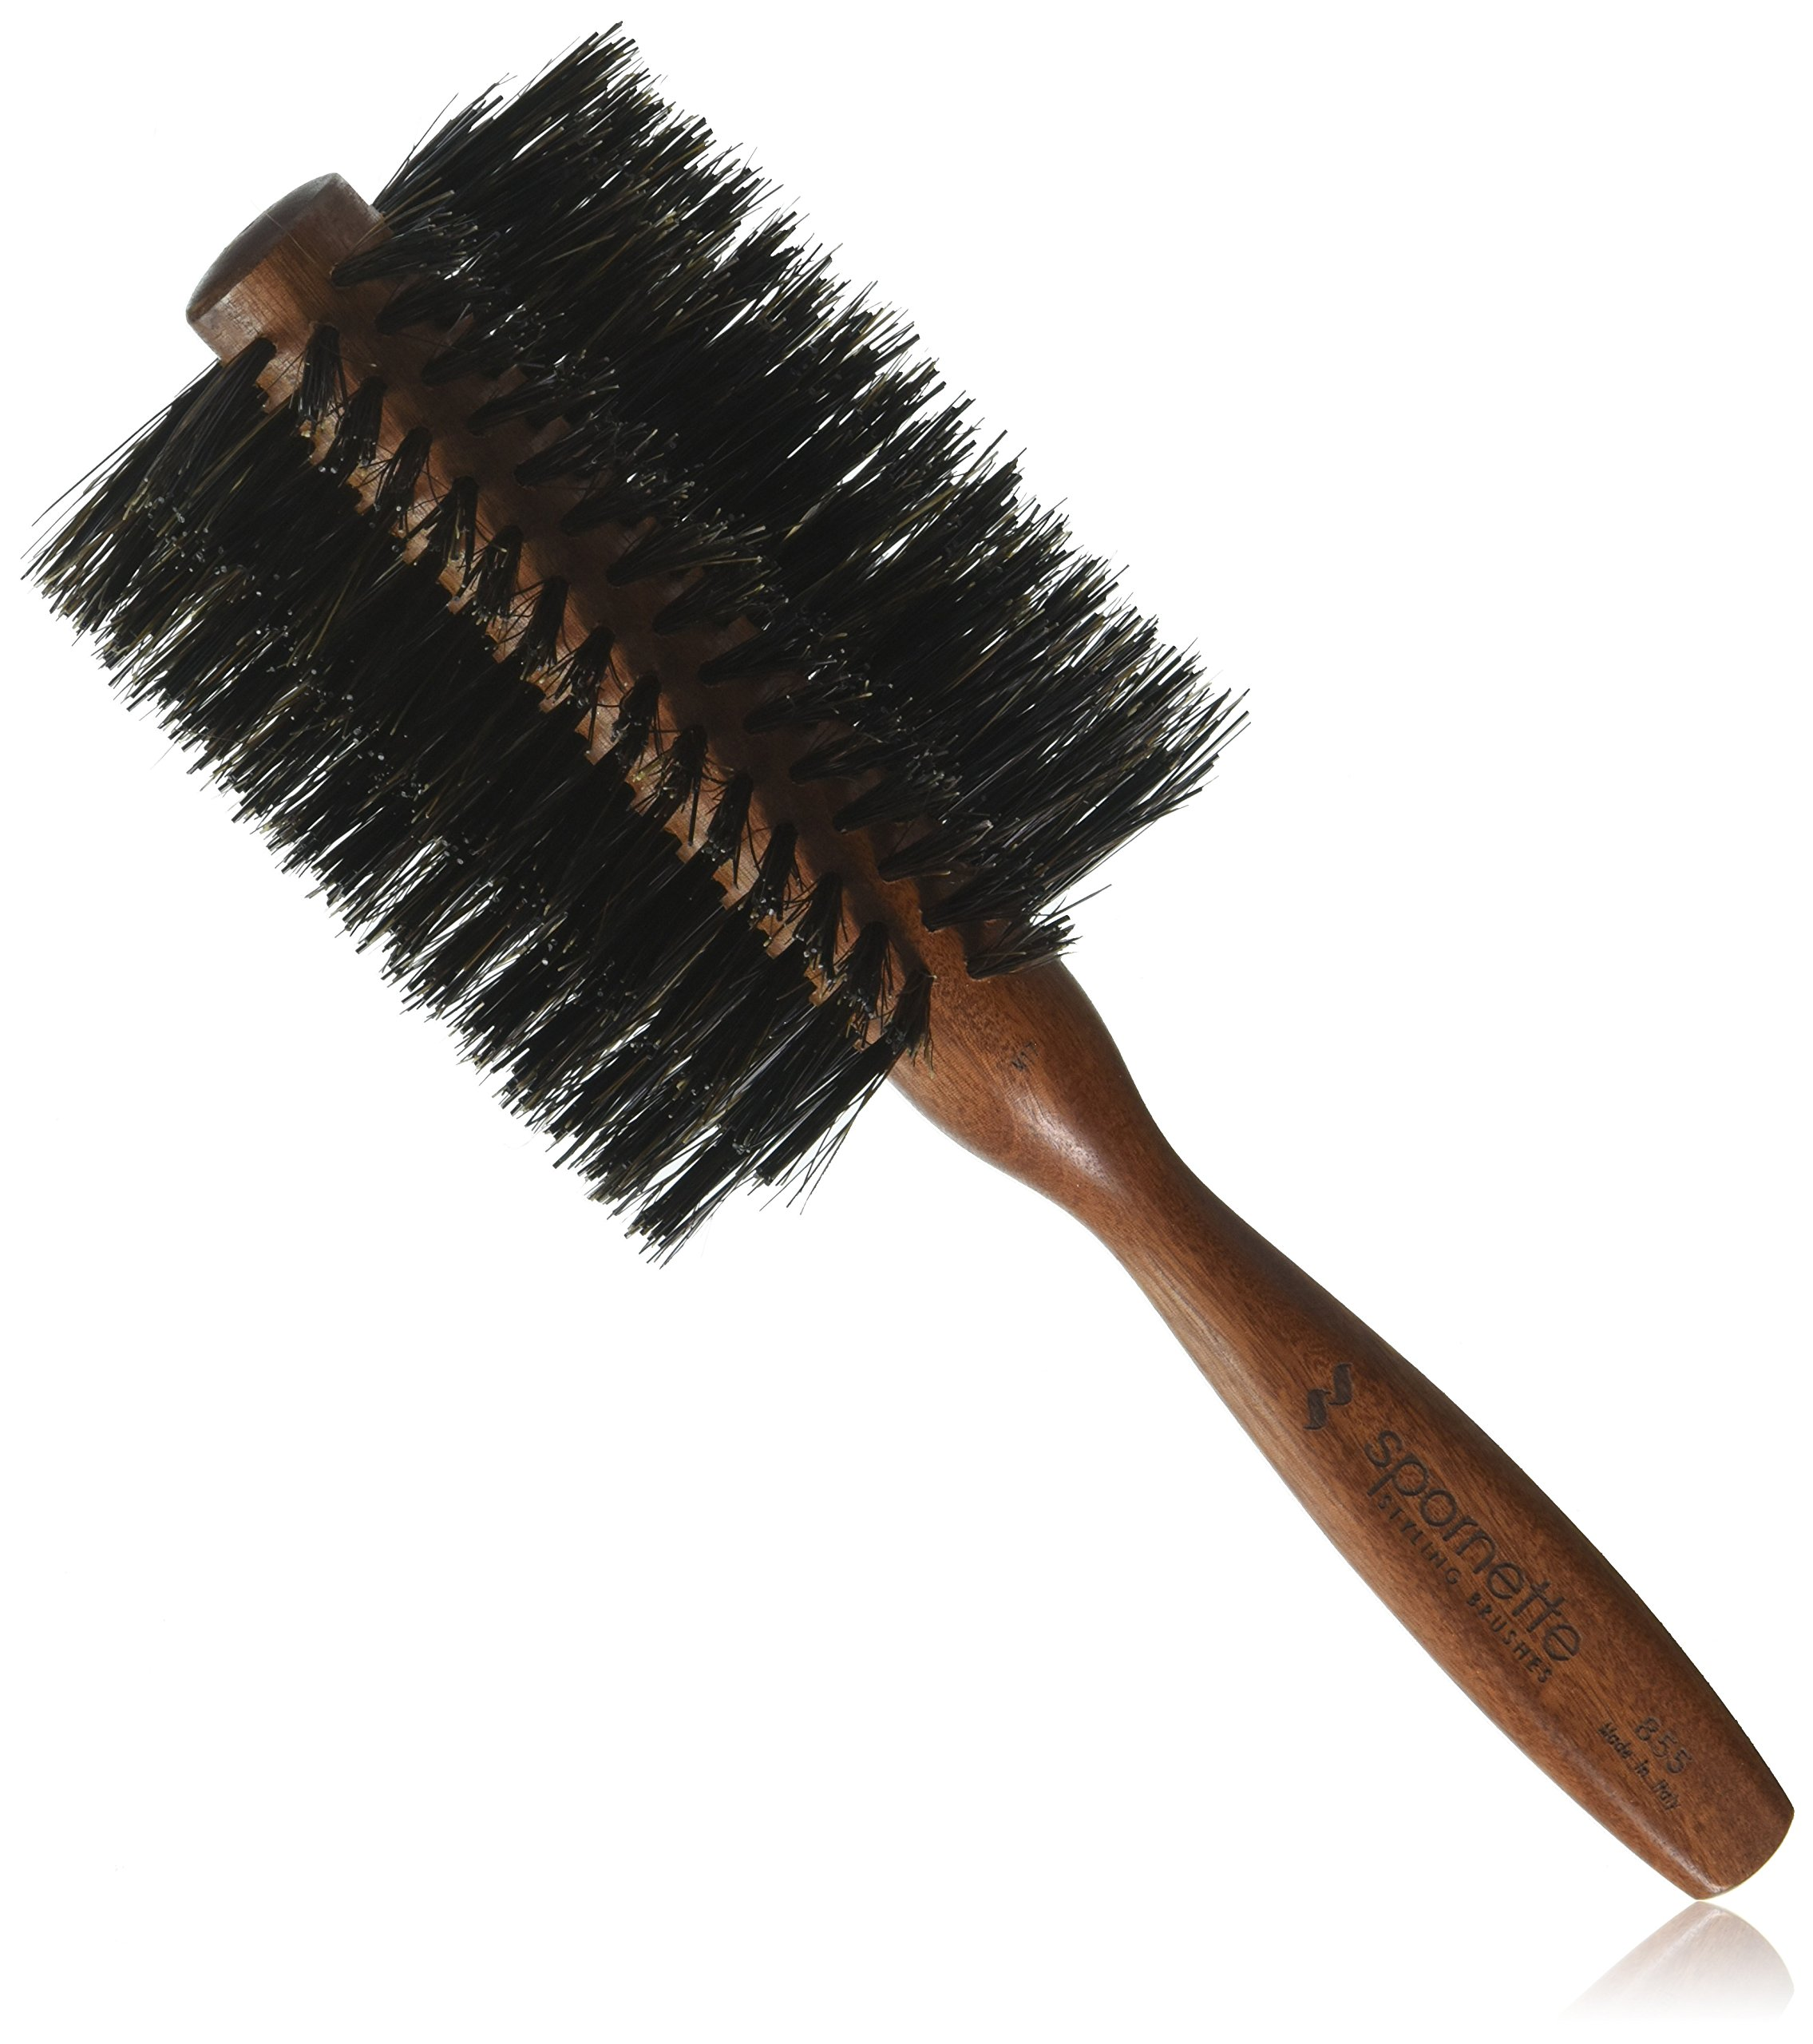 Spornette Italian 3 inch Round Boar Bristle Brush #855 with Wooden Handle for Blowouts, Styling, Volume, Straightening & Curling Medium, Long, Thin, Thick, Straight, Curly, Normal Hair